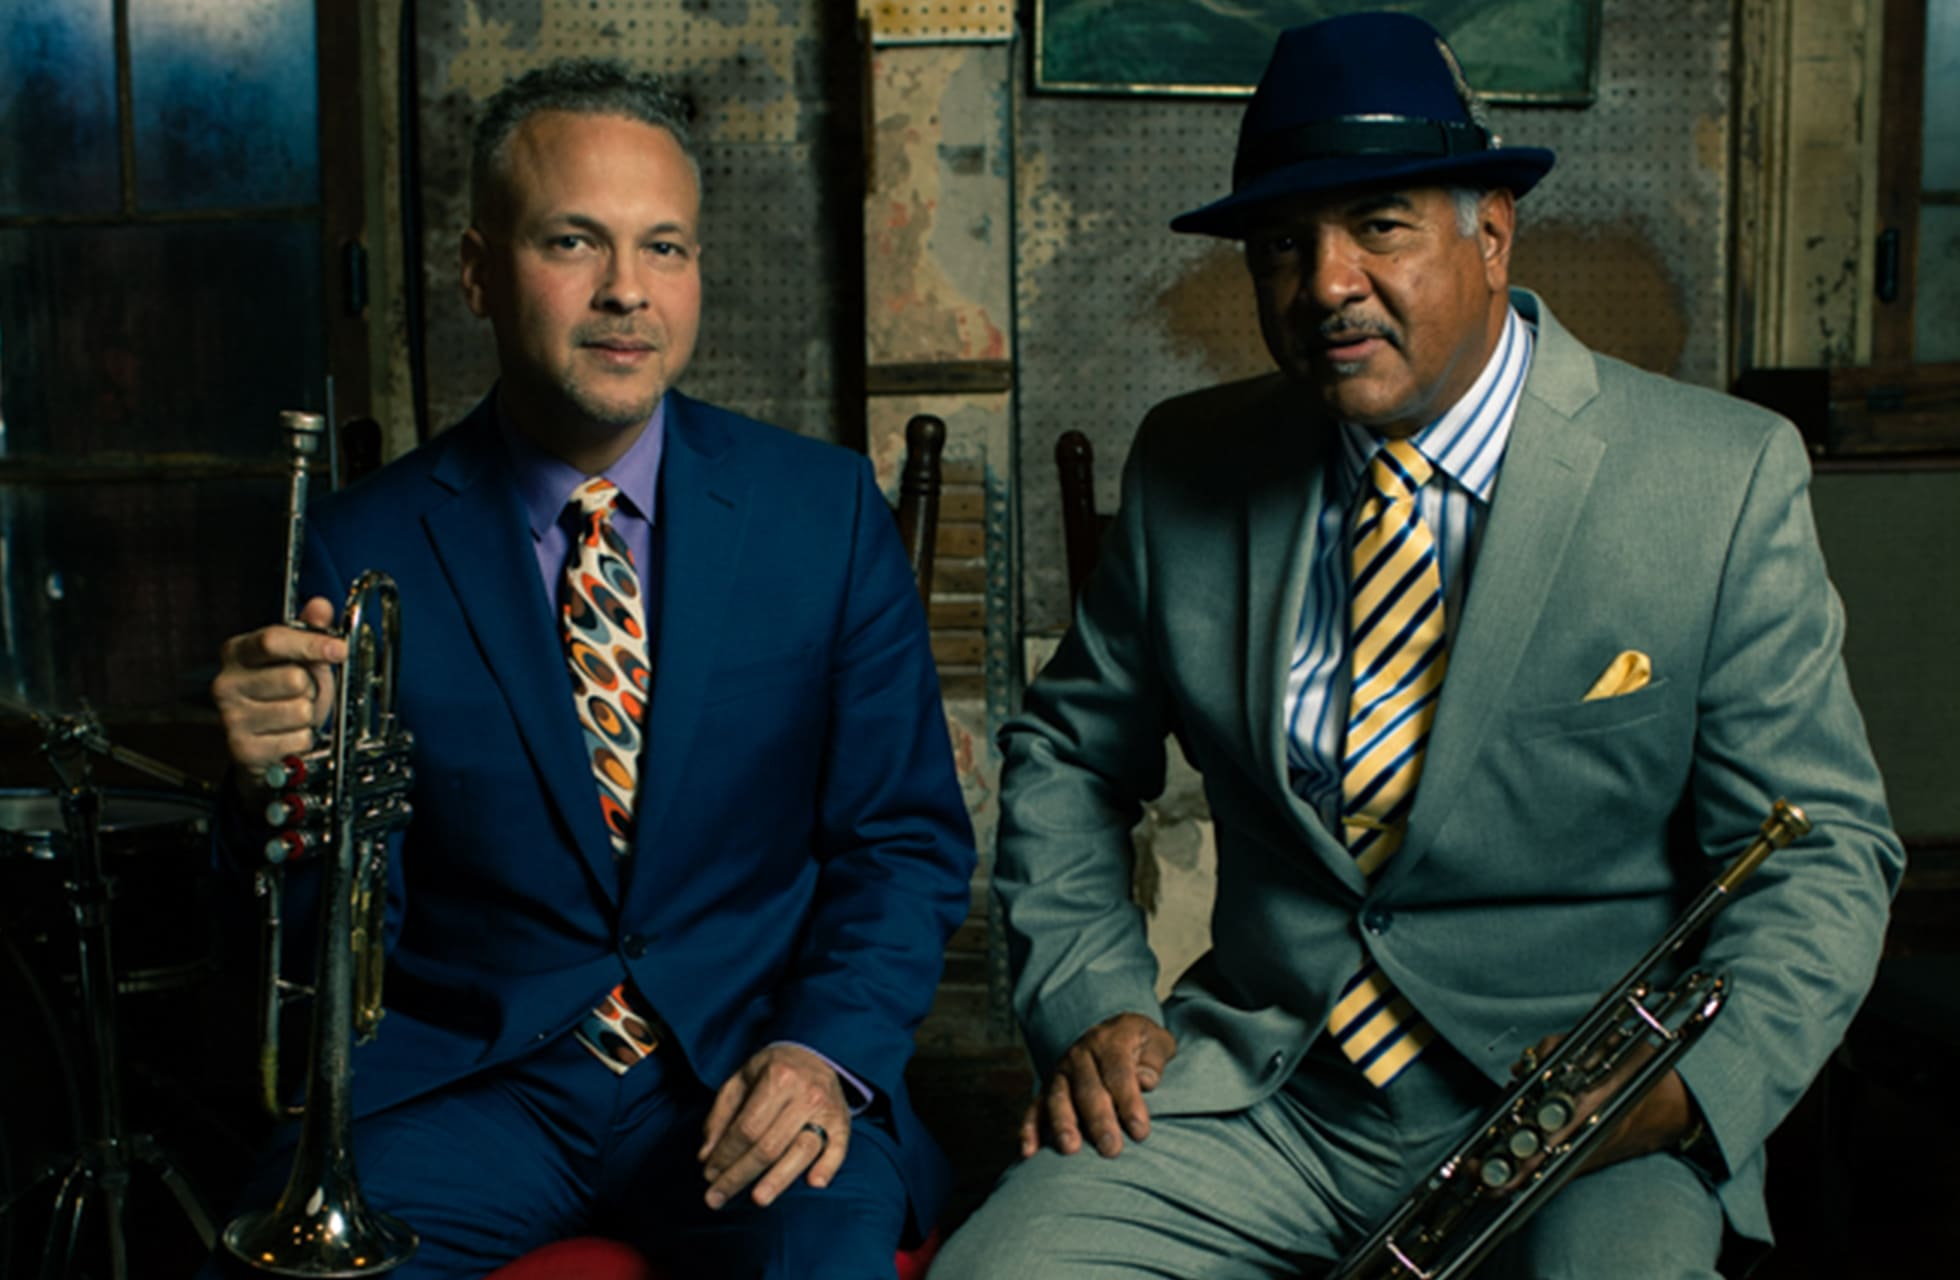 SUPPORT THE PRESERVATION HALL FOUNDATION